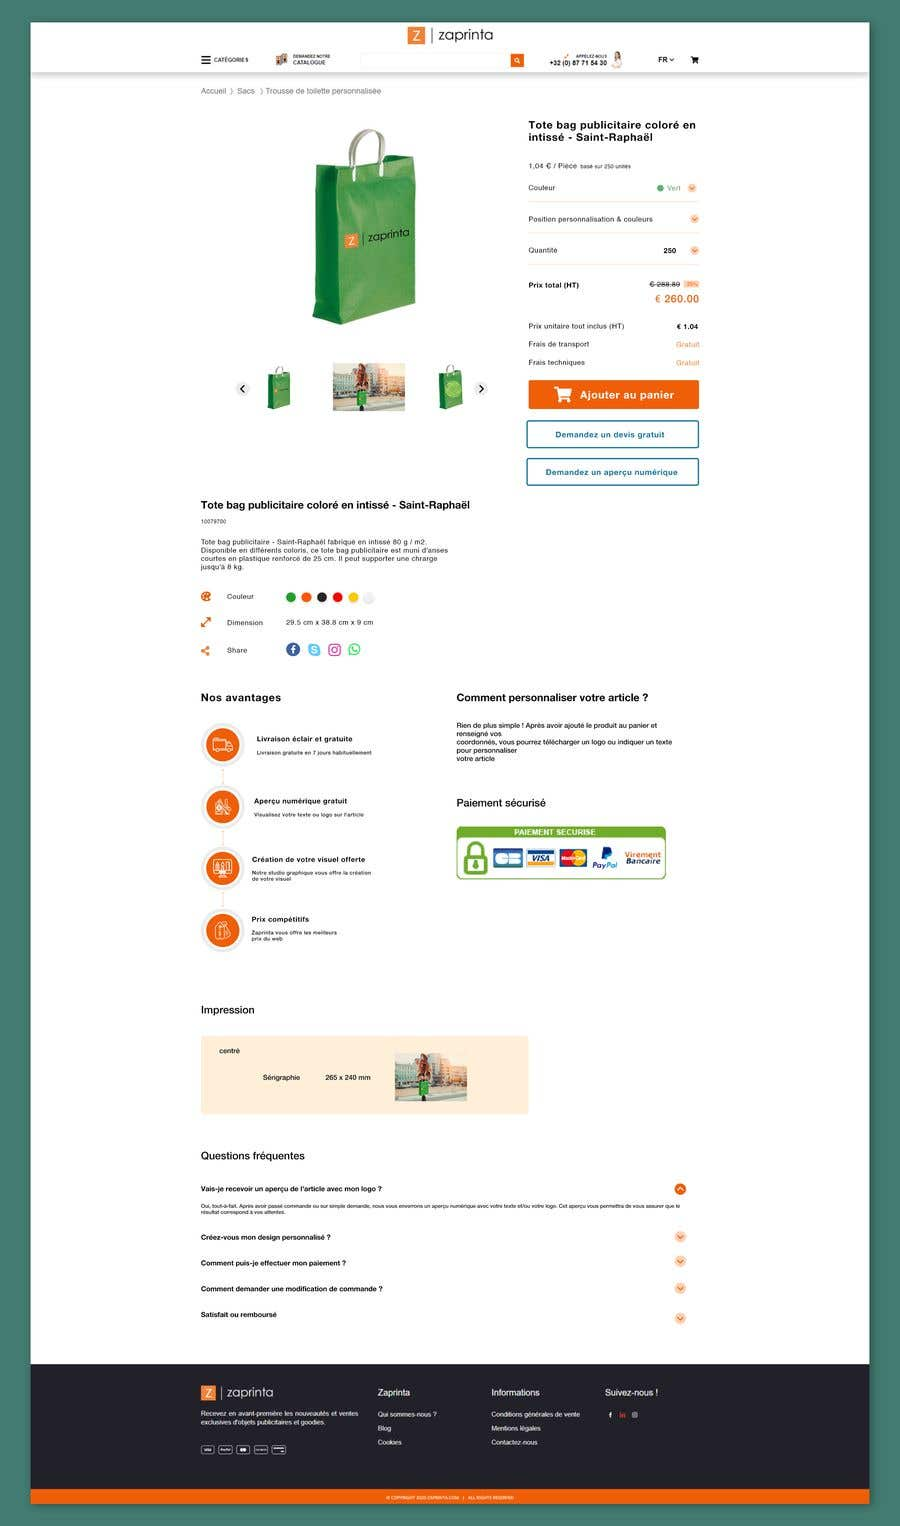 Penyertaan Peraduan #                                        56                                      untuk                                         Create a new product page template for my E-commerce website